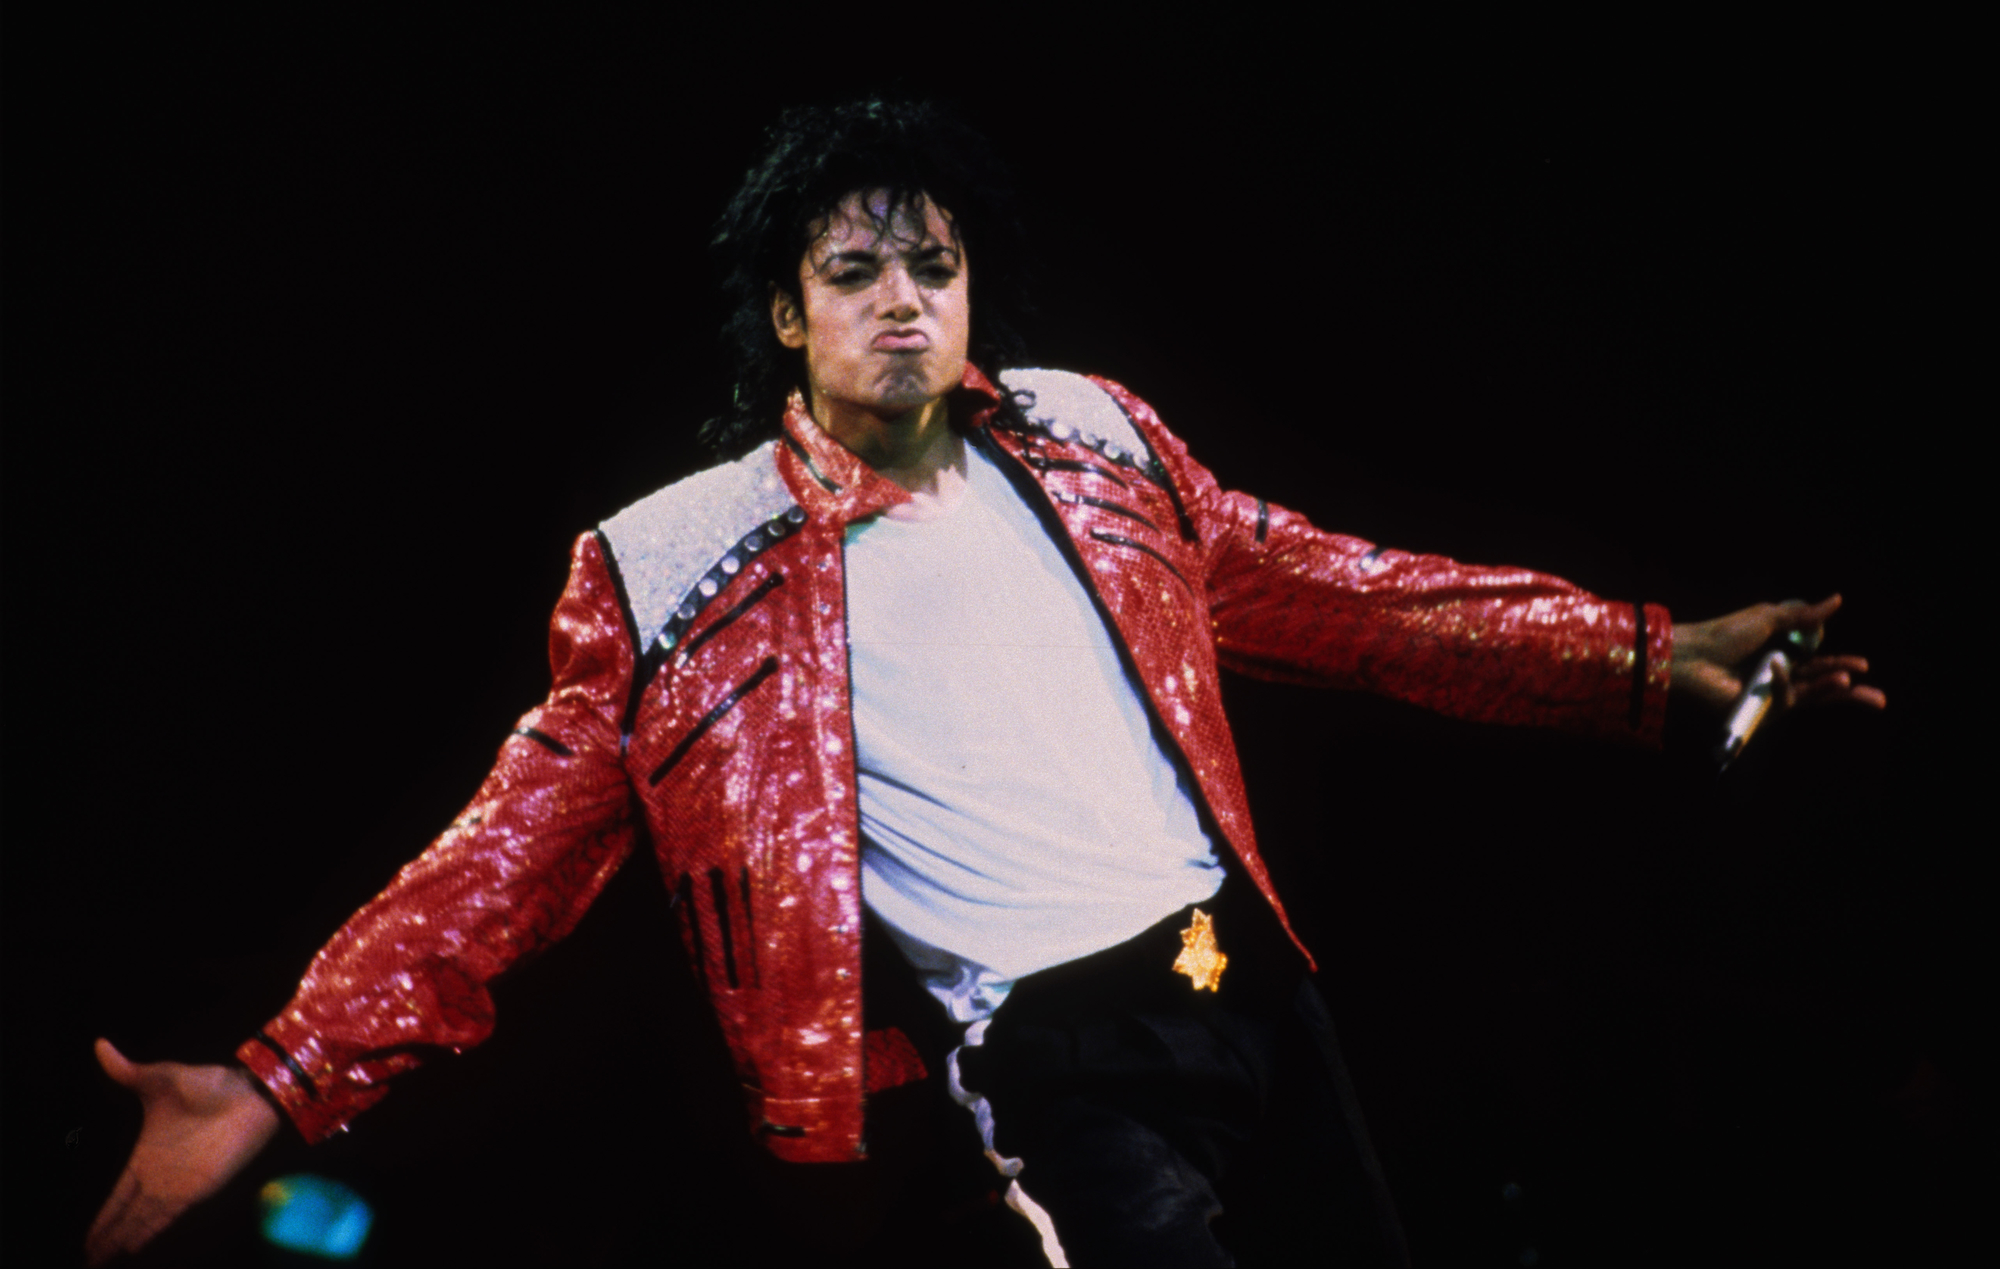 Michael Jackson is once again the highest earning dead celebrity